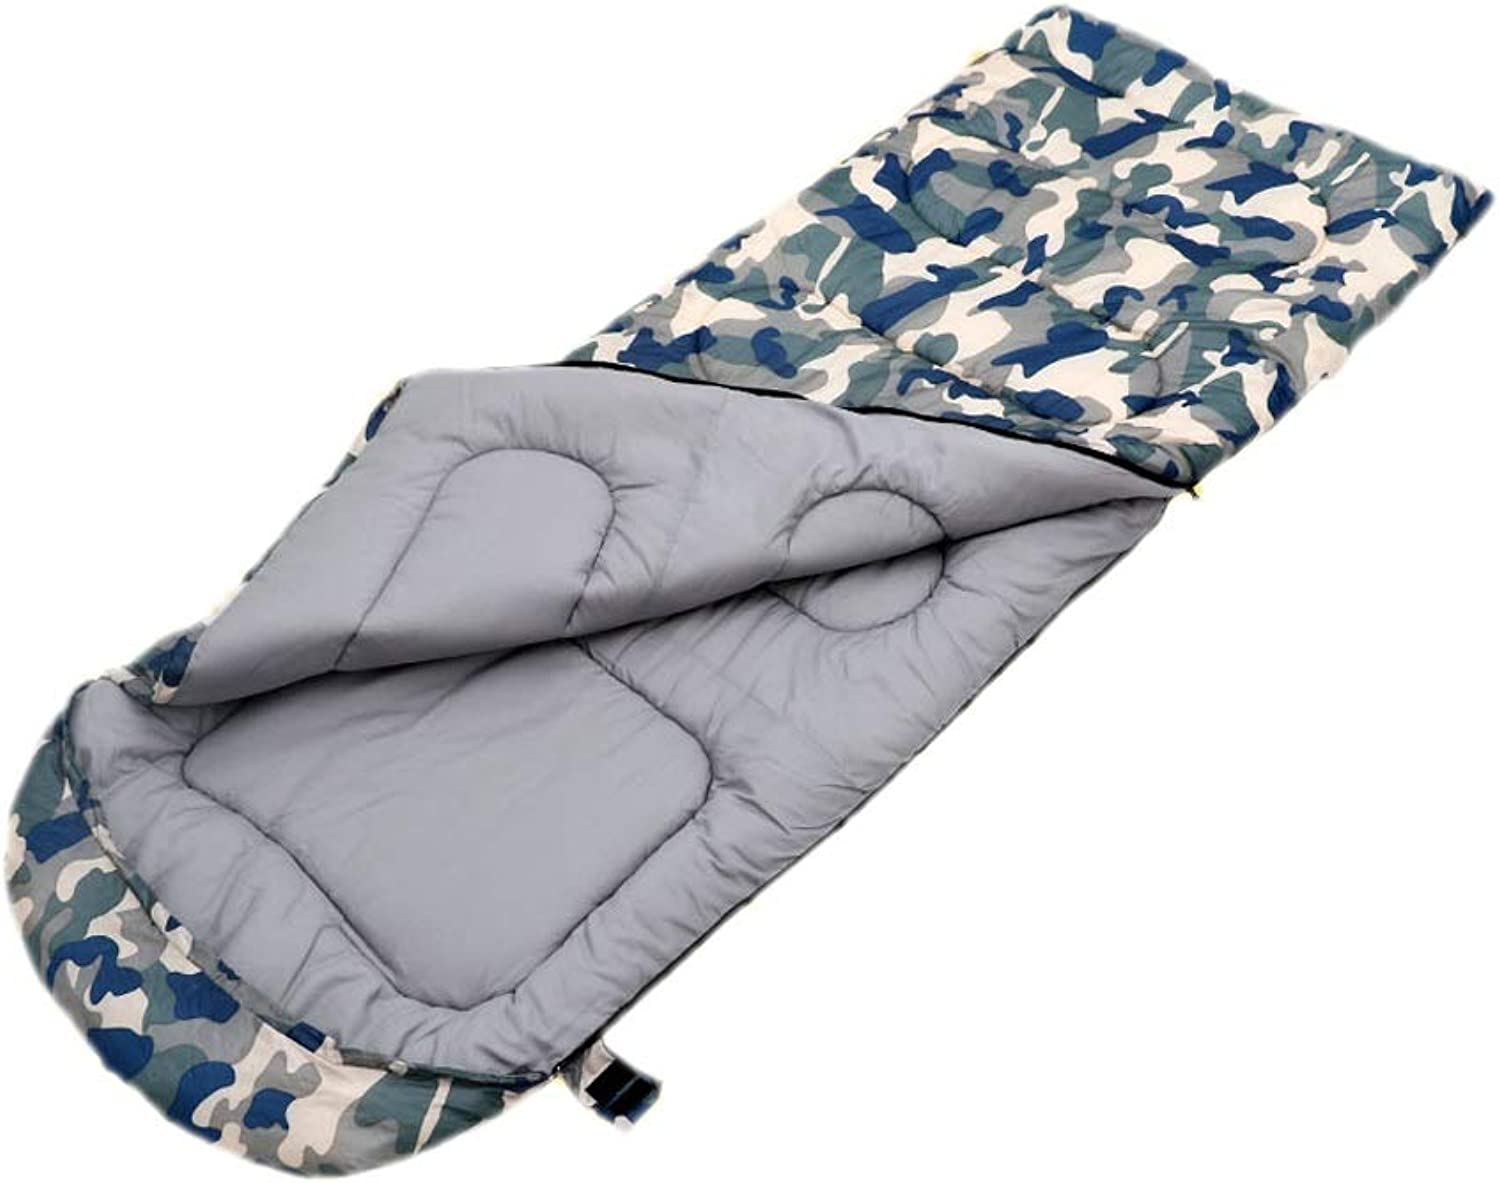 Camouflage Camping Sleeping Bag Leisure Travel Mountaineering Office Lunch Break Study Room Cold Equipment Removable Lining